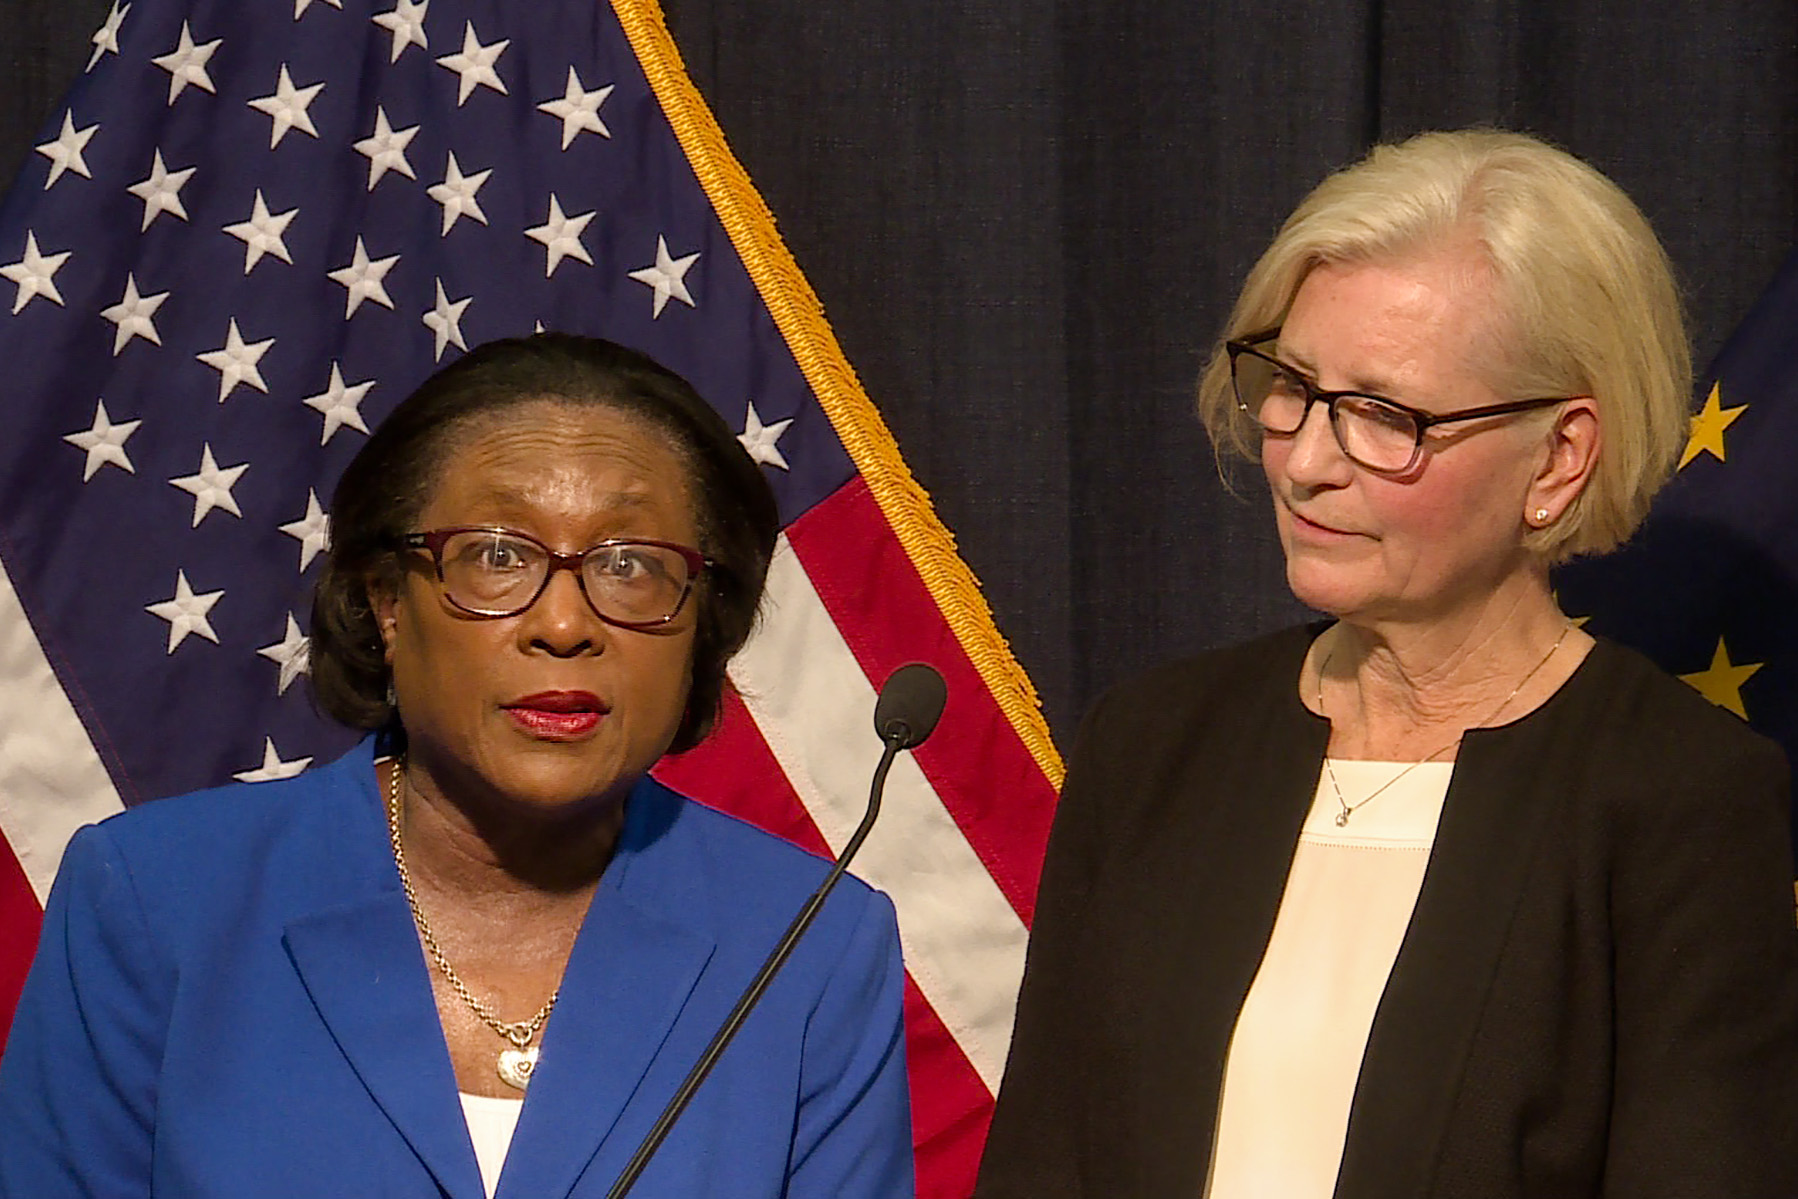 Marion County Health Department Director Virginia Caine and State Health Commissioner Kris Box speak at a press conference about the new coronavirus in Indiana Friday.